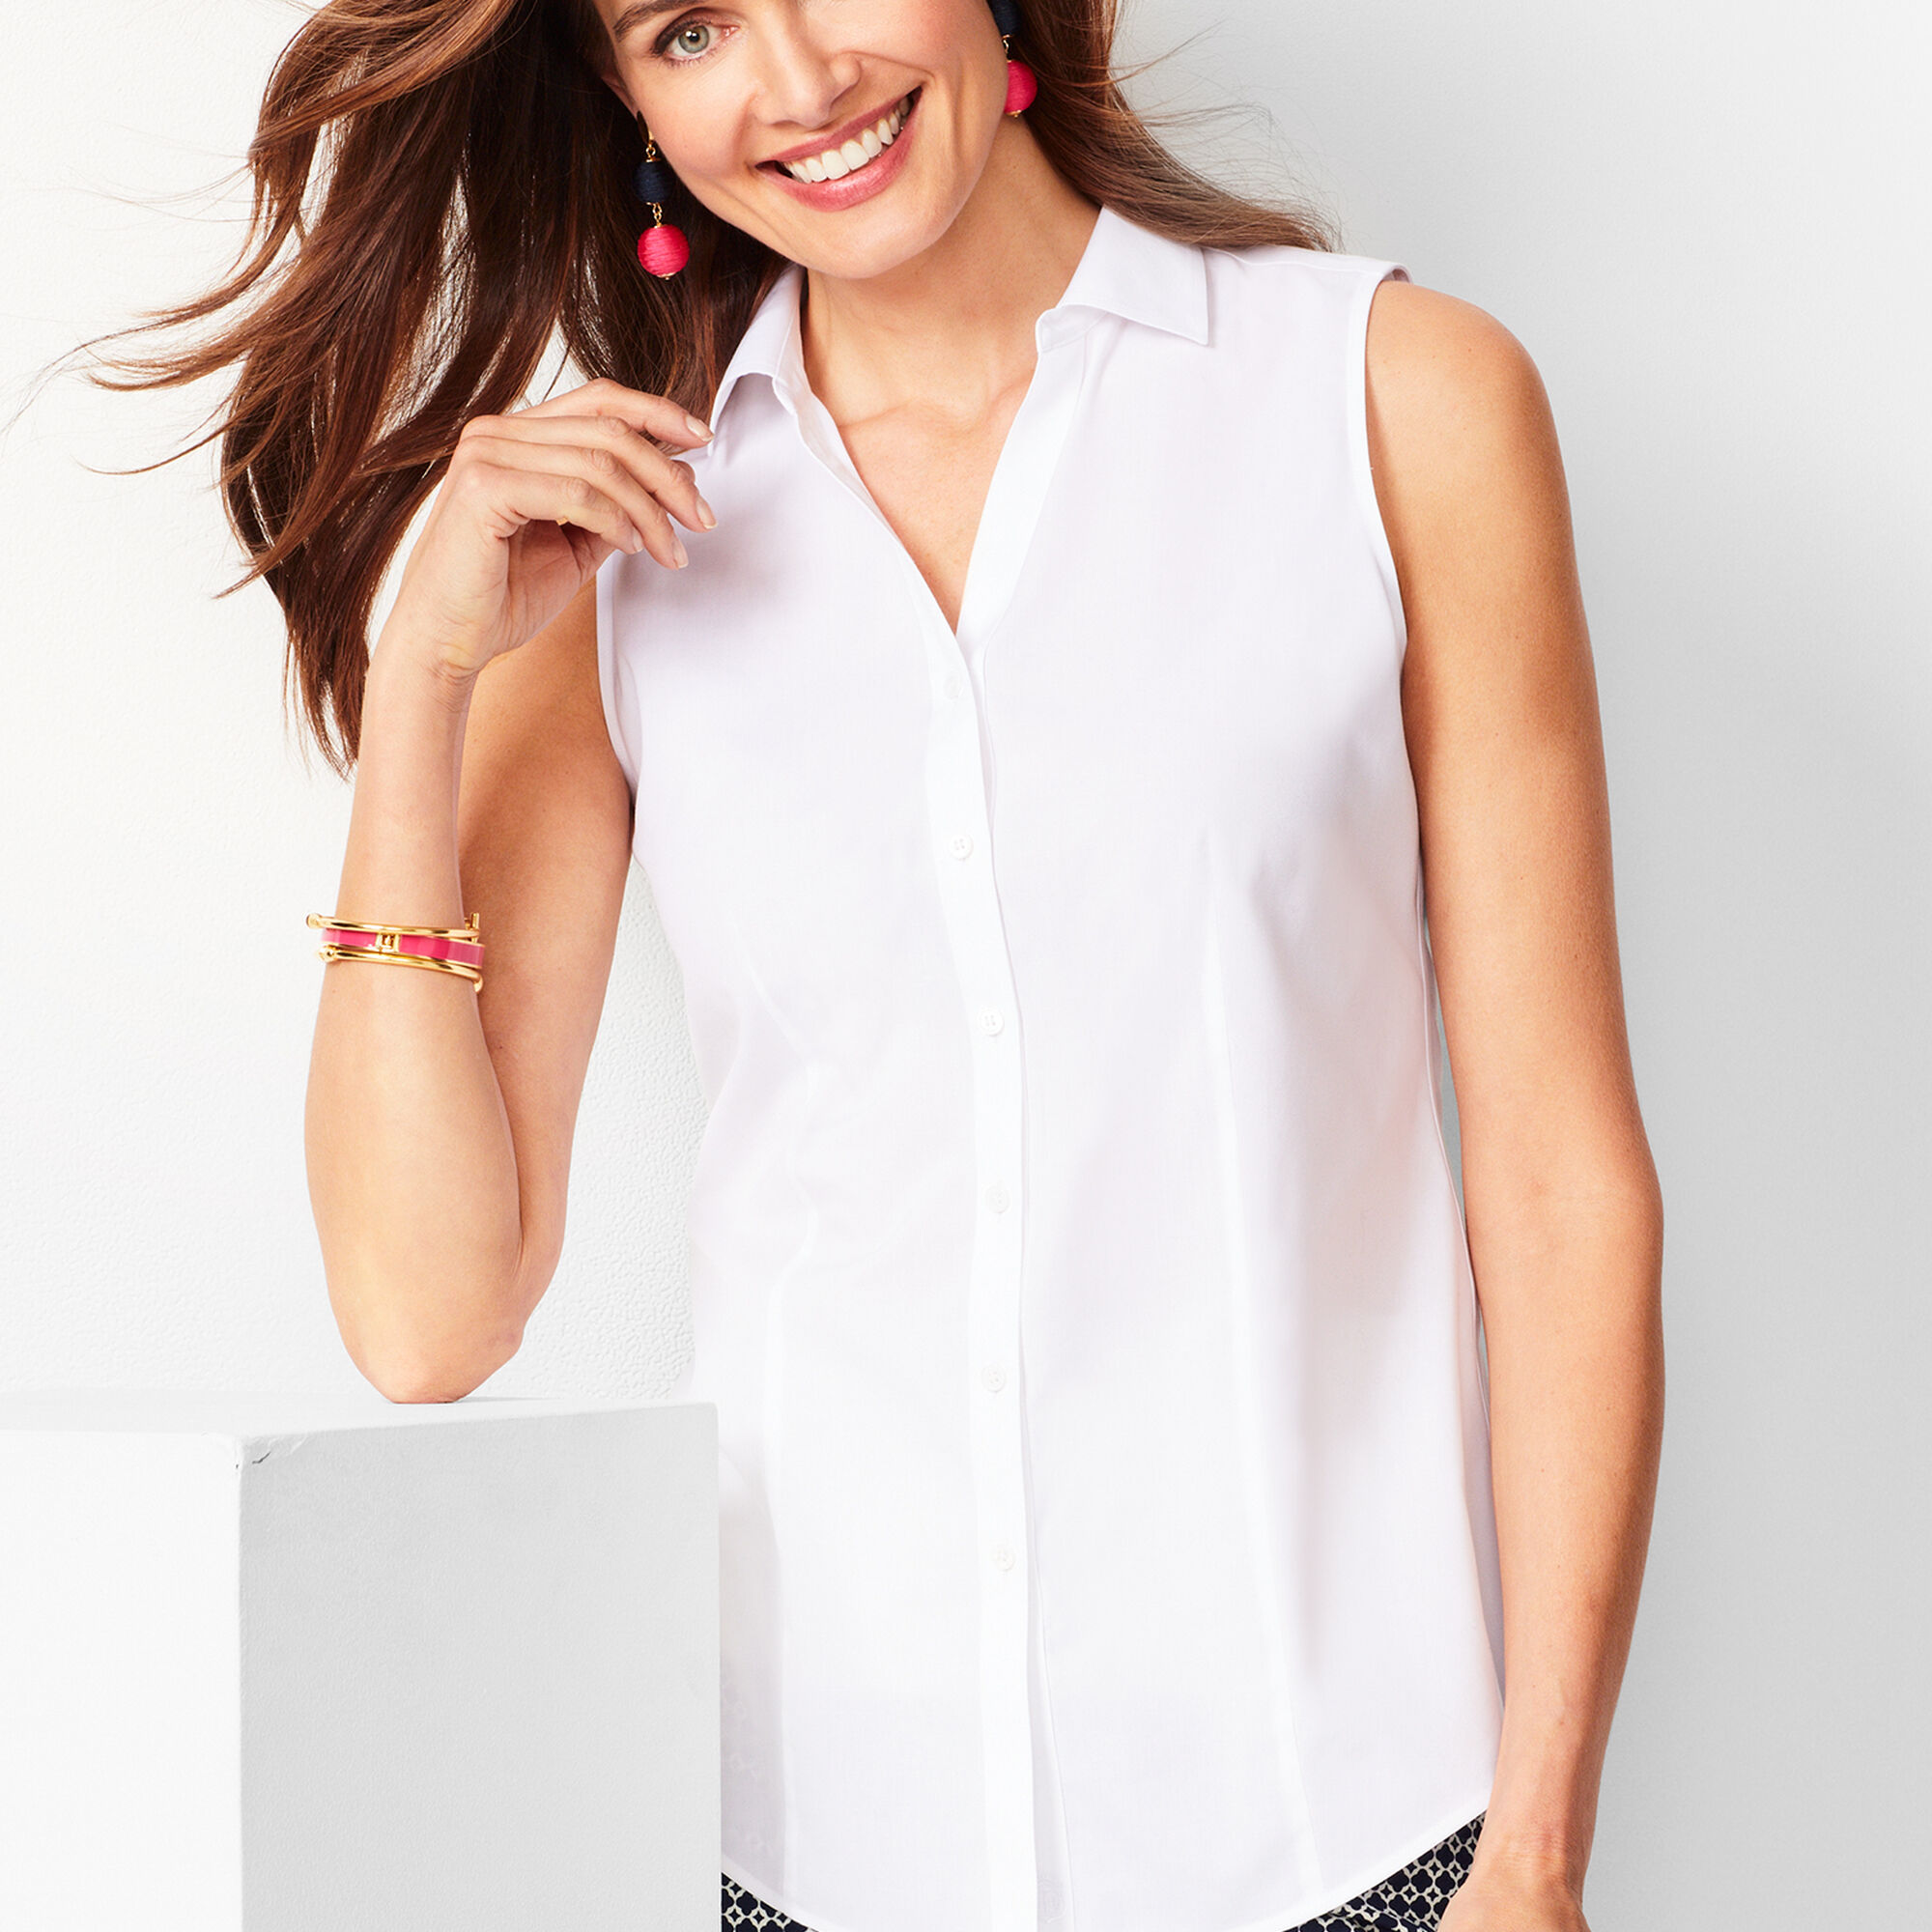 09ed36a03c446 Perfect Shirt - Sleeveless - Solid Opens a New Window.